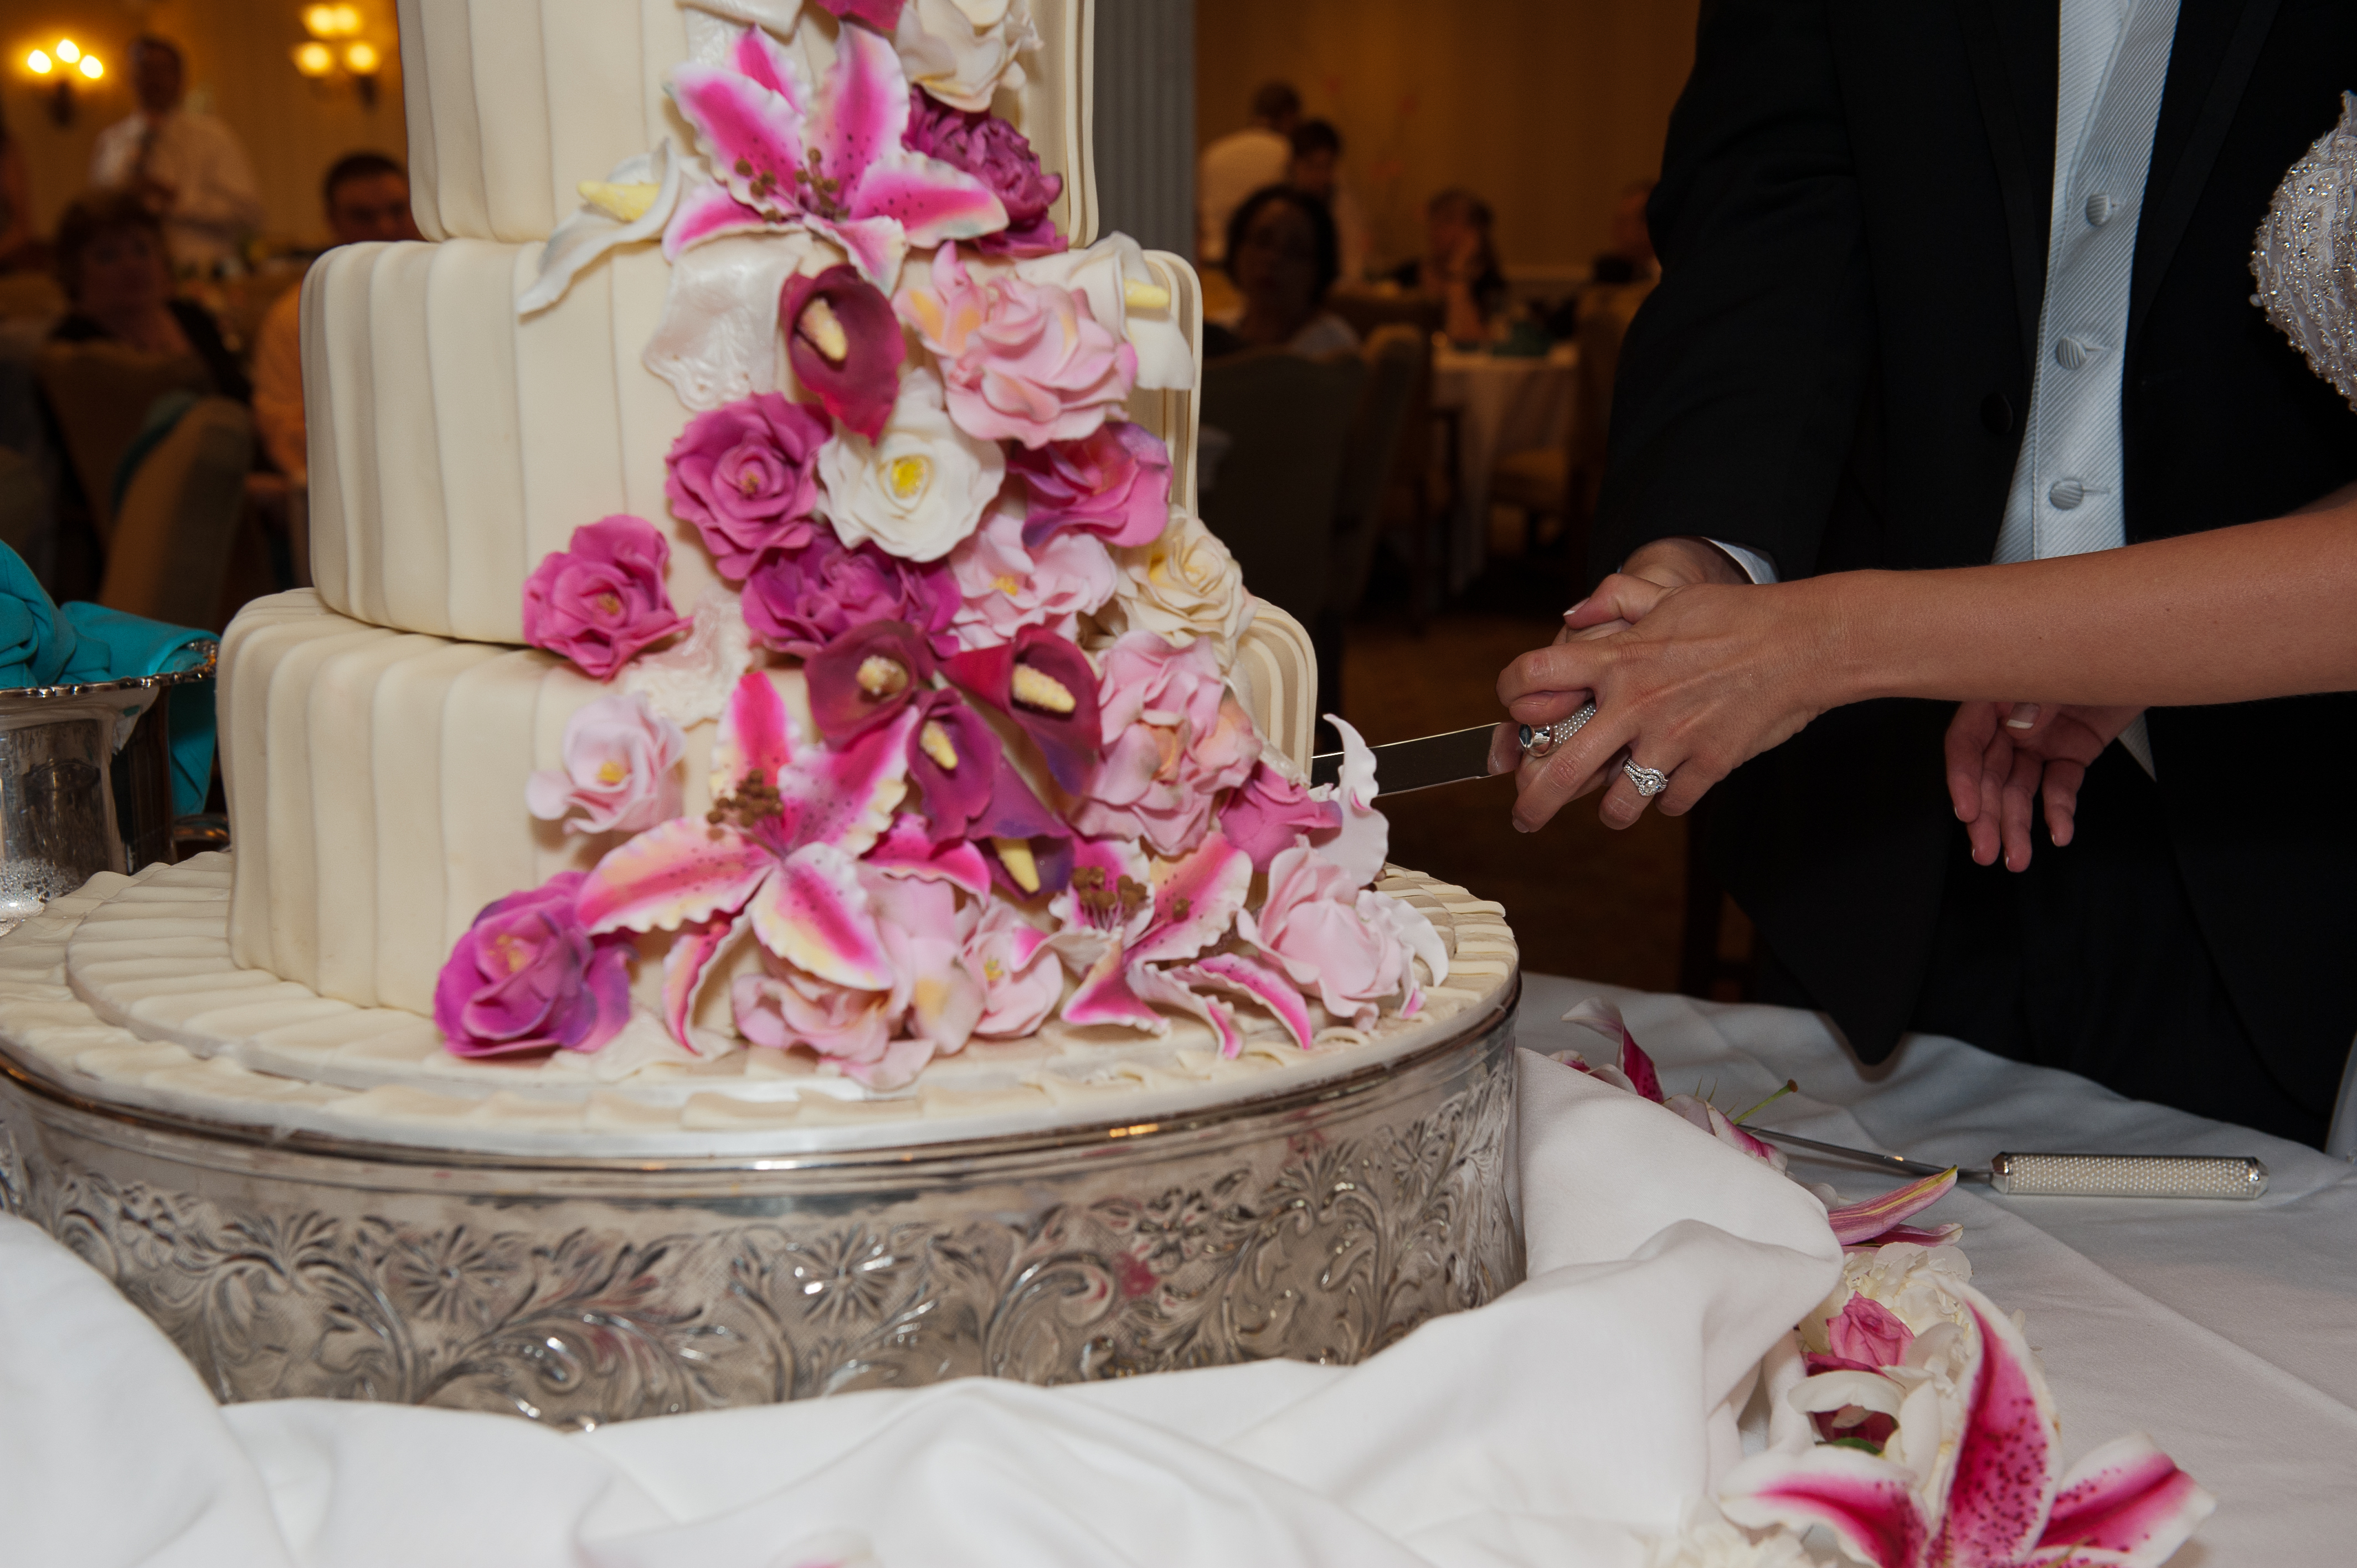 wedding cake tasting event wedding cakes sweet boutique bakery tasting events 26216